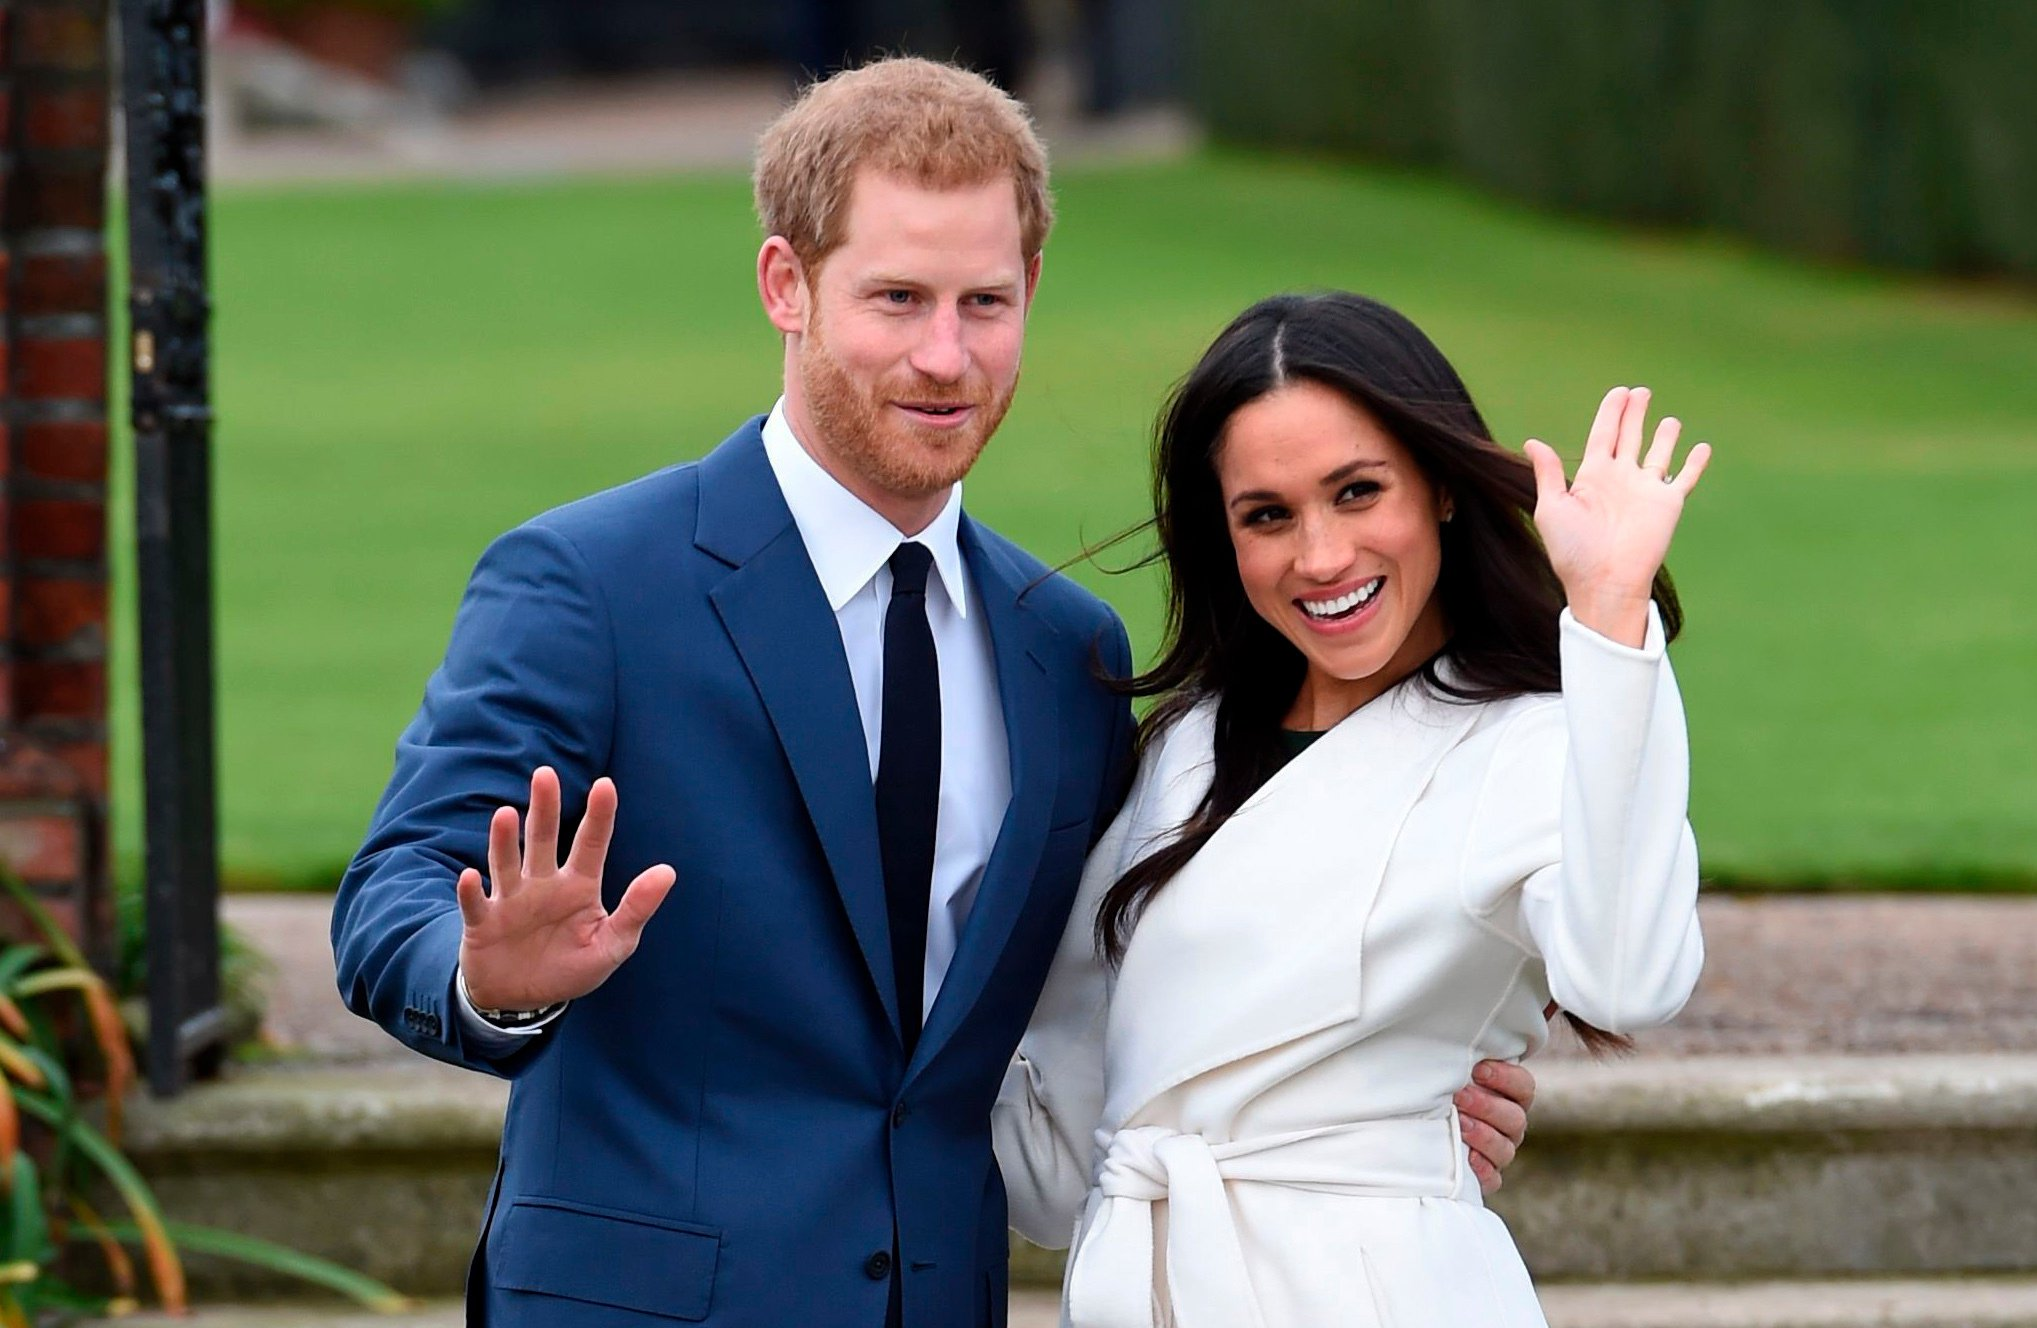 FILE - In this Nov. 27, 2017 file photo, engaged couple Britain's Prince Harry, left, and Meghan Markle pose for the media at Kensington Palace in London. The wedding of Prince Harry and Meghan Markle comes with a world of etiquette and protocol for guests. While the upper crust among them may be well initiated, newbies from Hollywood could be attending their first royal affair. The royal nuptials will take place on Saturday, May 19. (Eddie Mulholland/Pool via AP)